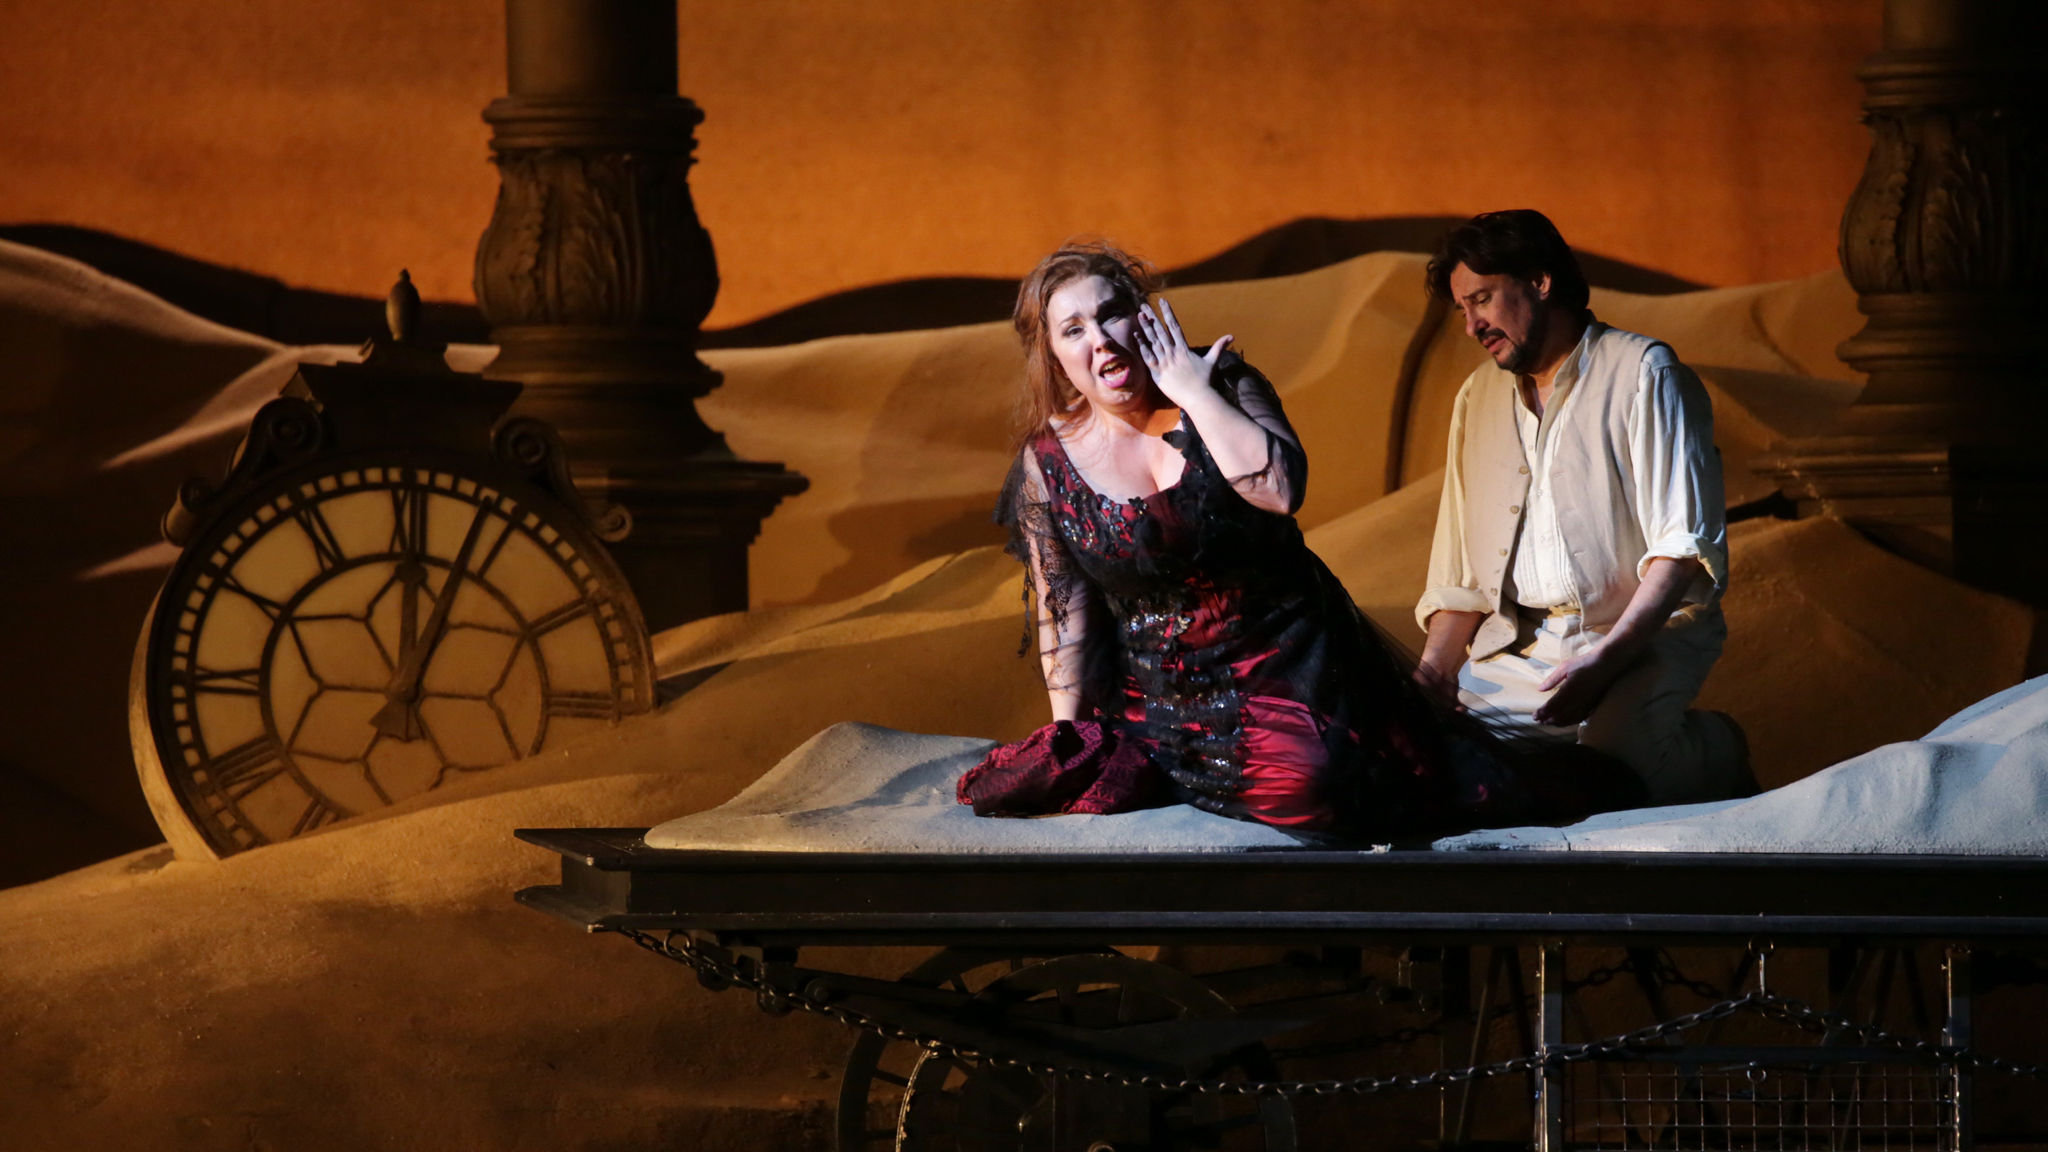 Manon Lescaut at La Scala reveals Puccini's bold intentions